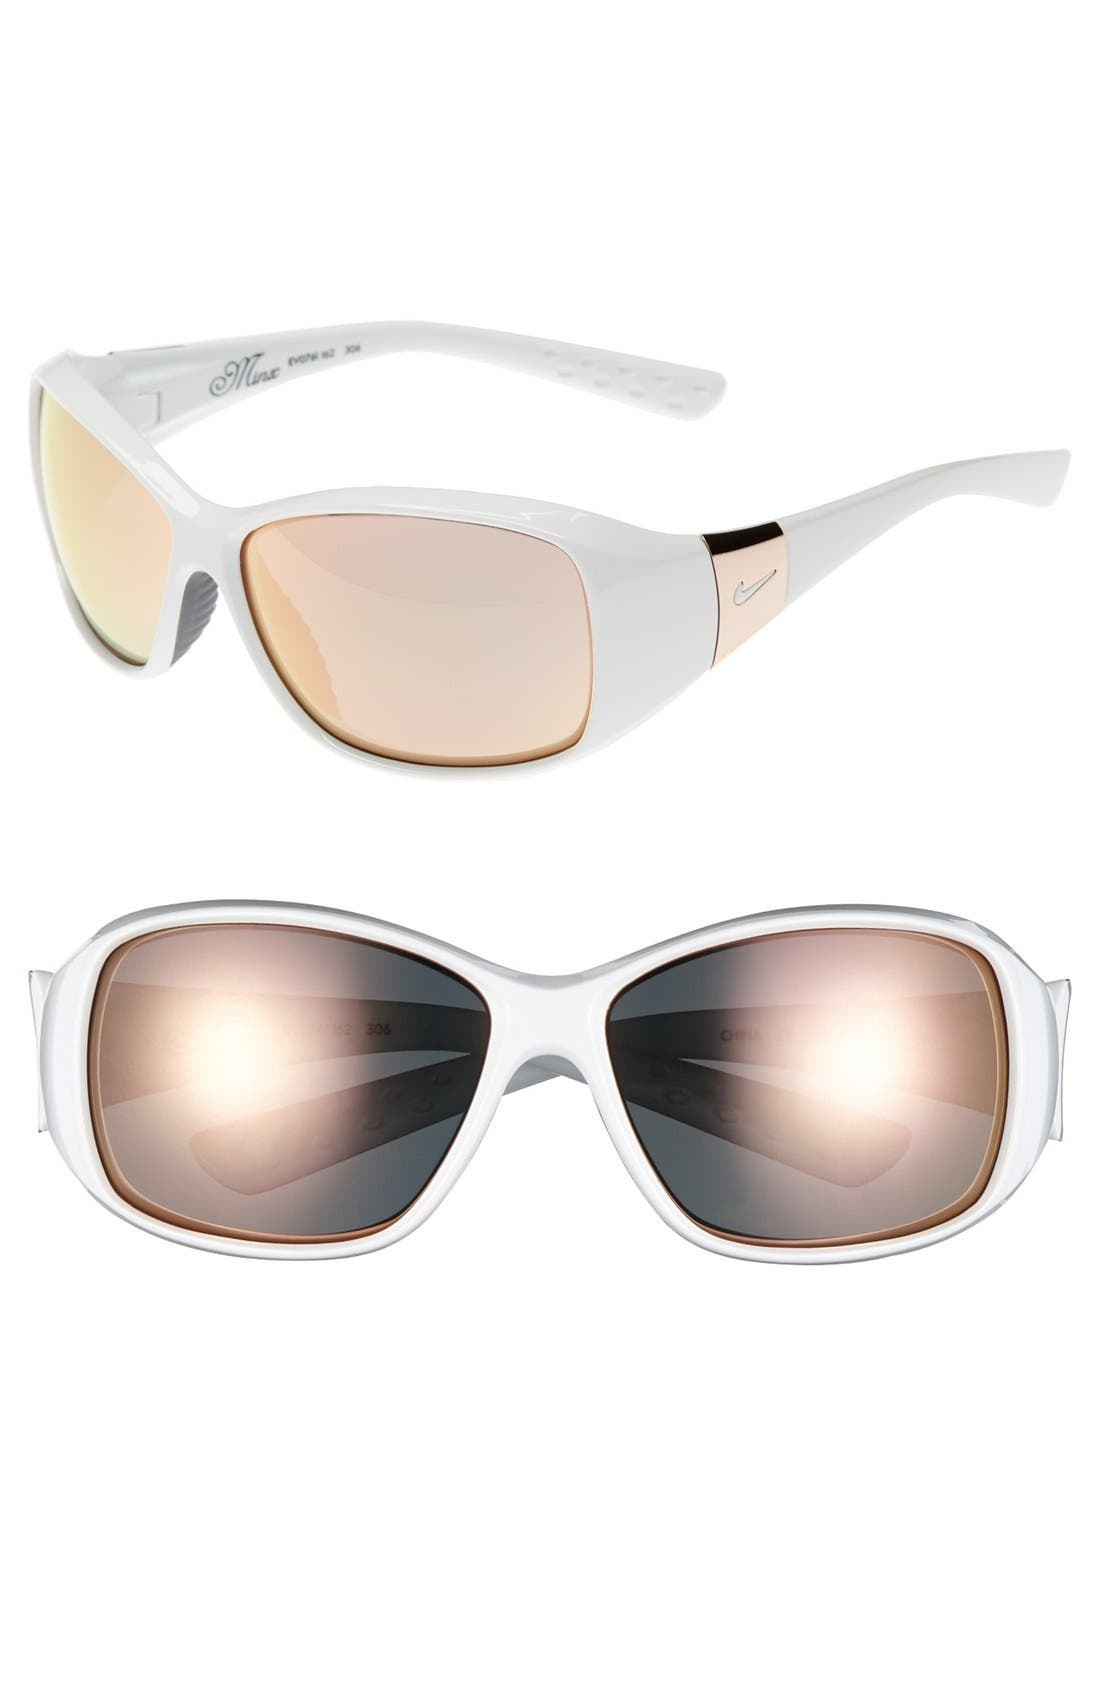 Alternate Image 1 Selected - Nike 'Minx' Sunglasses